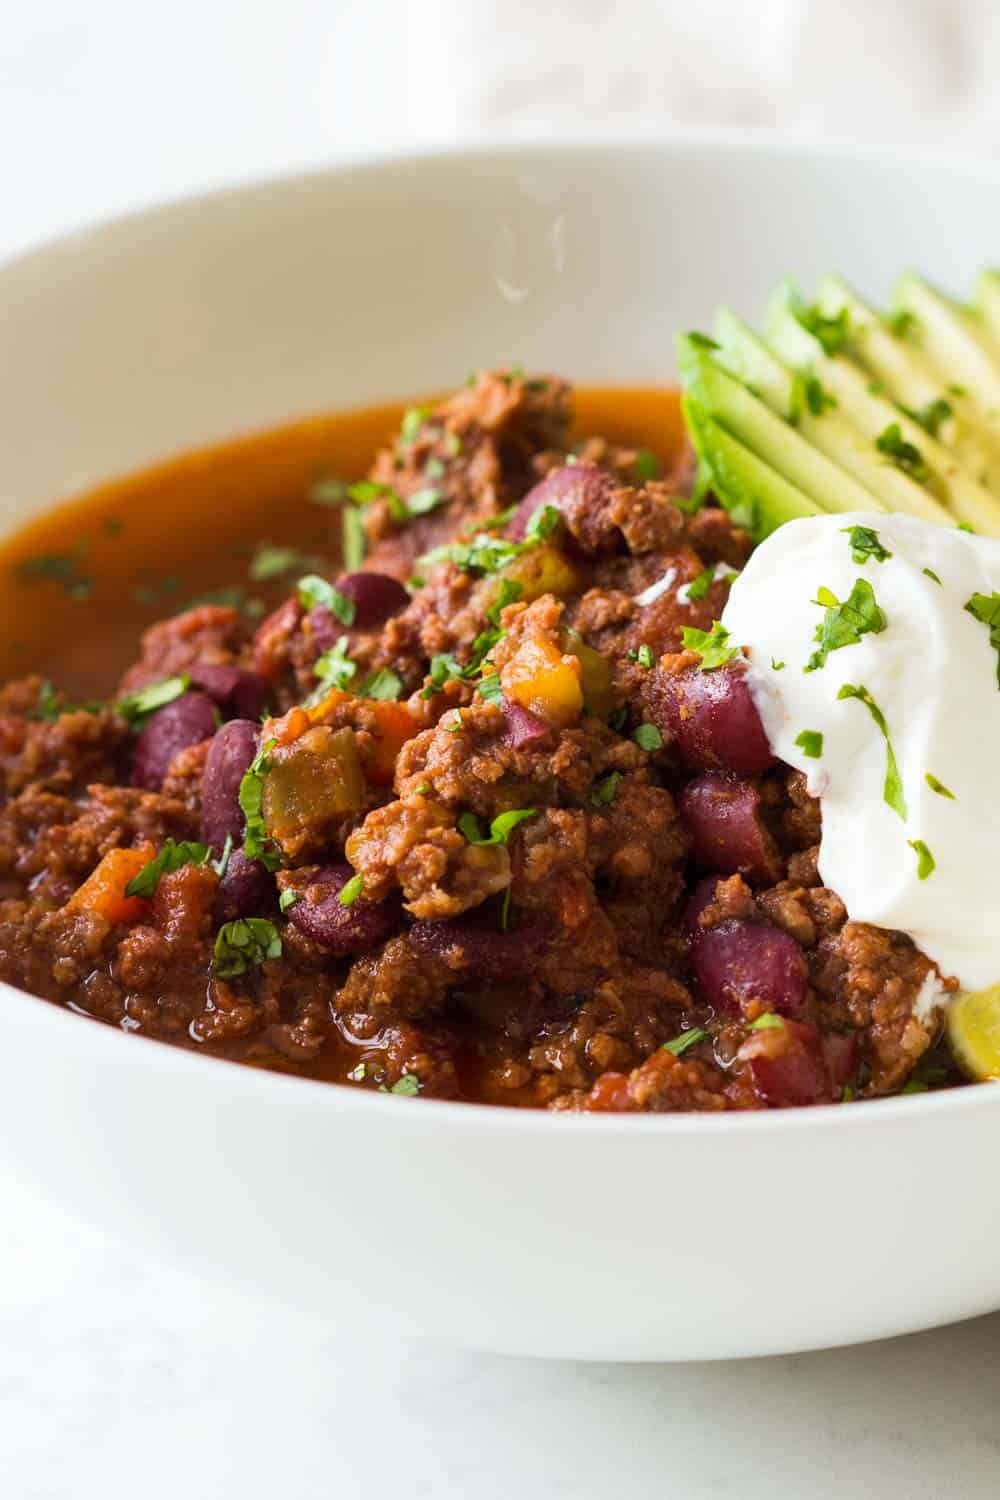 Serve a big crowd in just 45 minutes with this amazing Instant Pot Chili Con Carne. A quick, easy, nourishing and inexpensive meal that makes everybody happy!